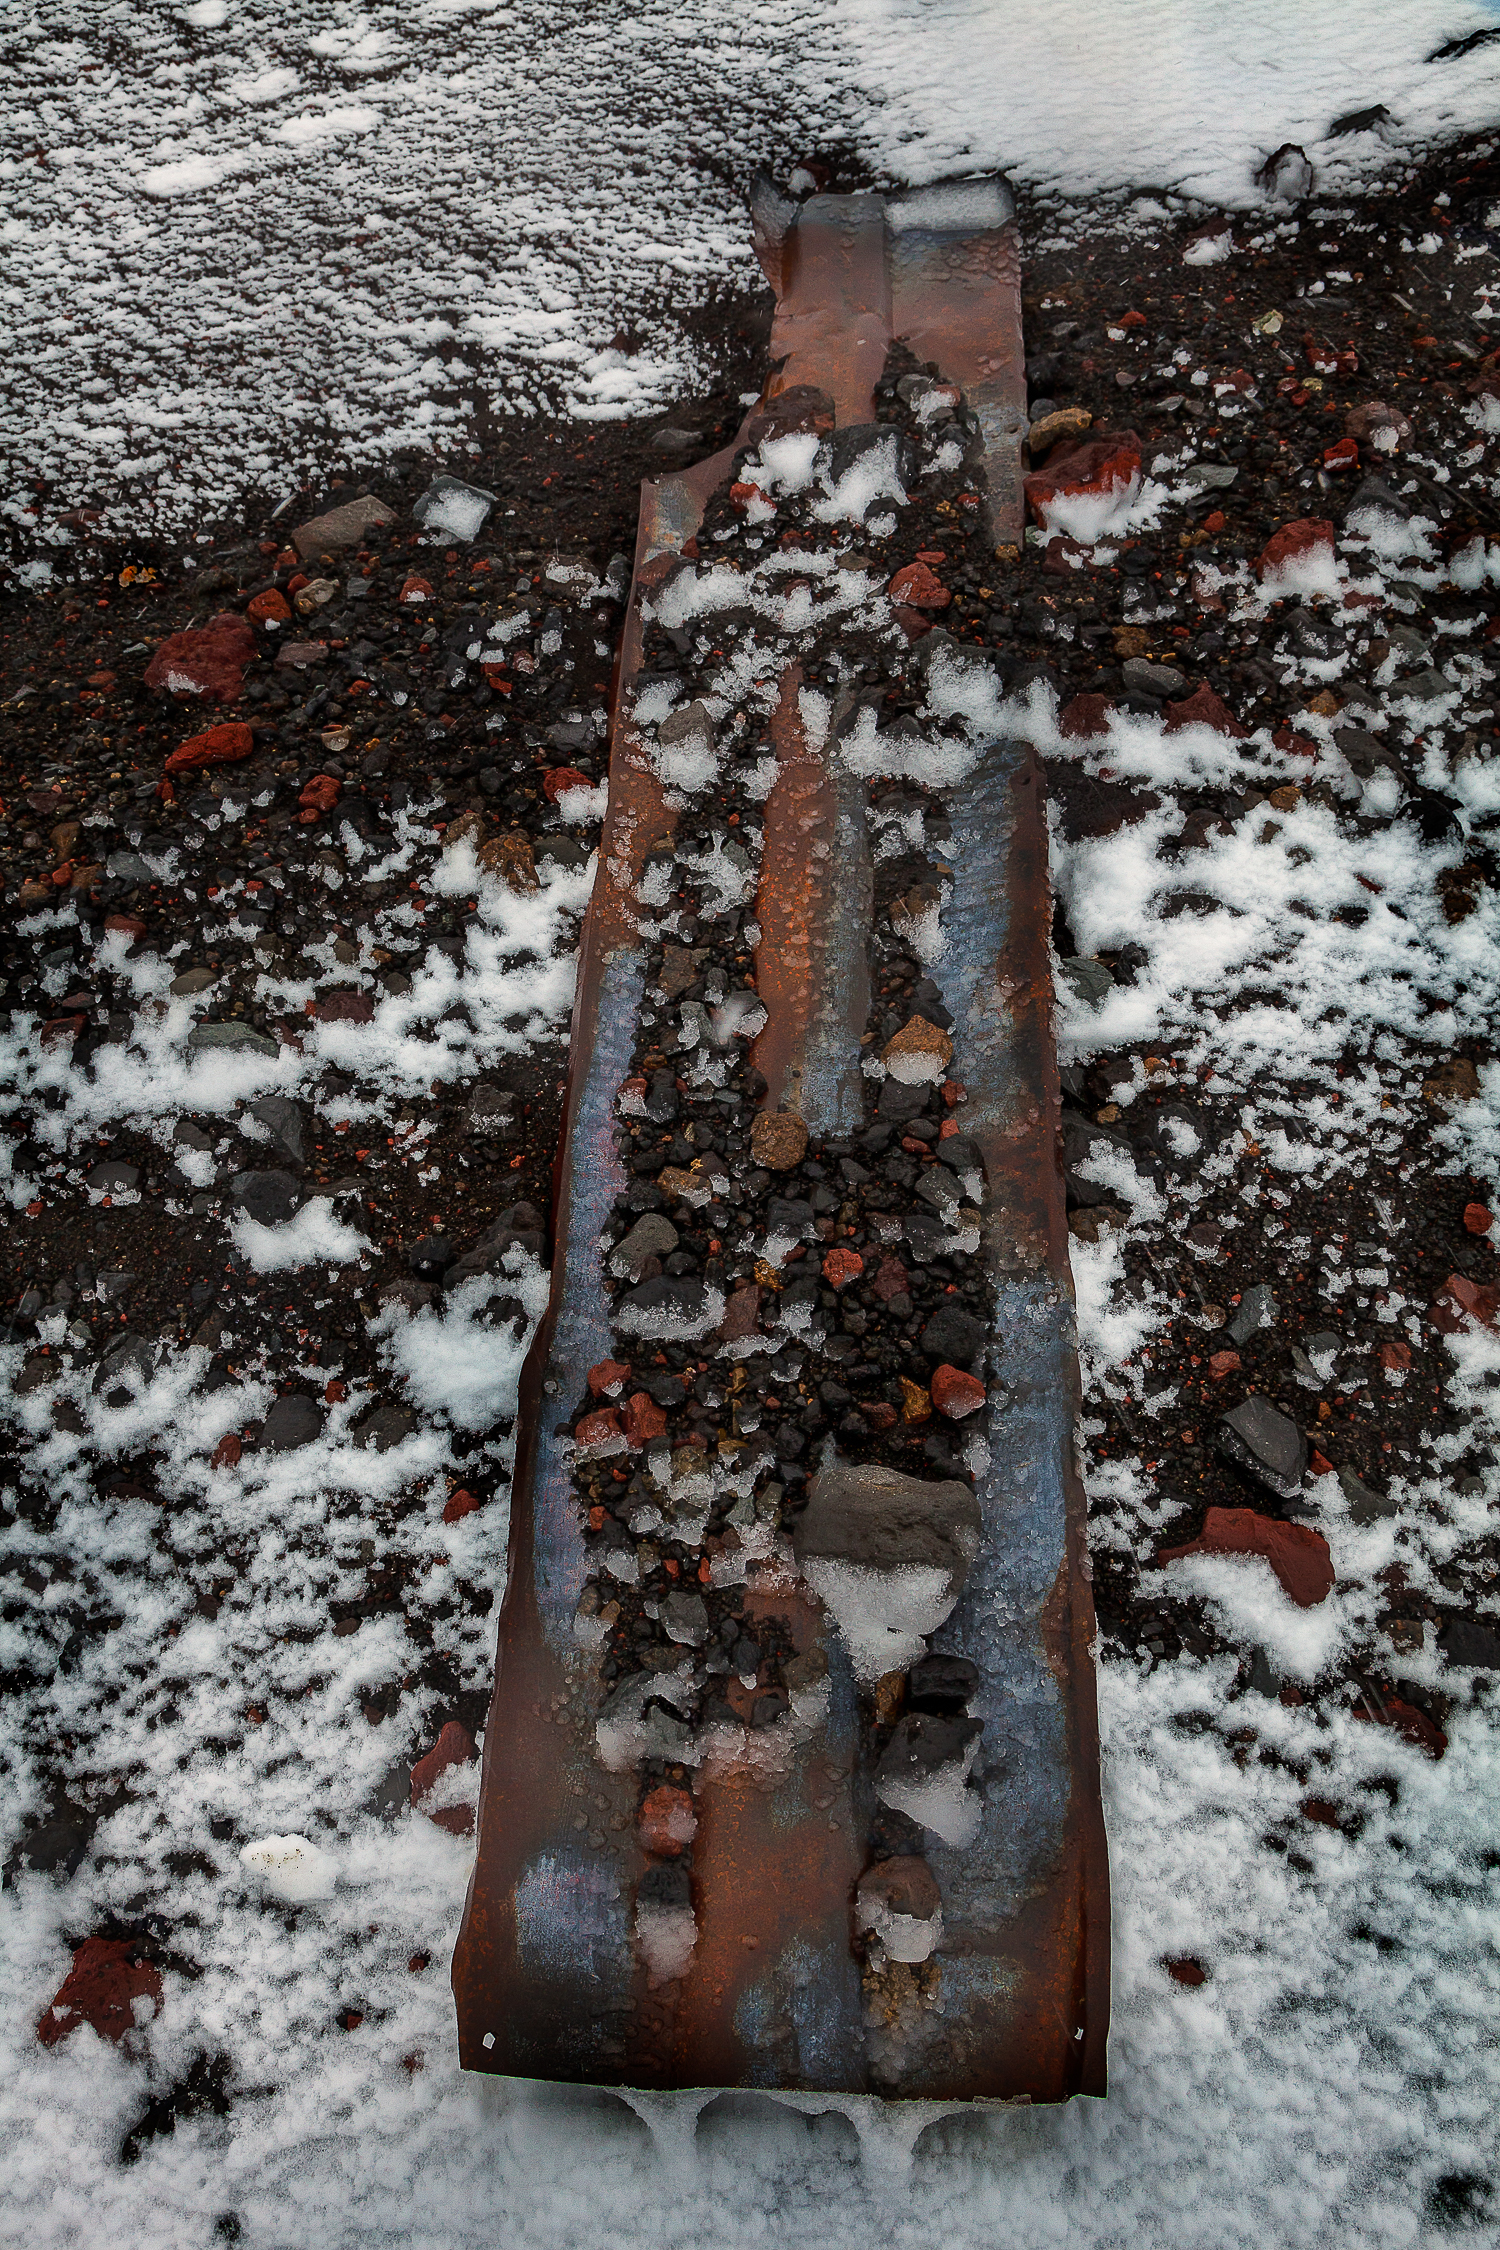 A detail, photographed during a snowstorm, of rusted metal at  Port Foster  near  Whalers Bay on  Deception Island .